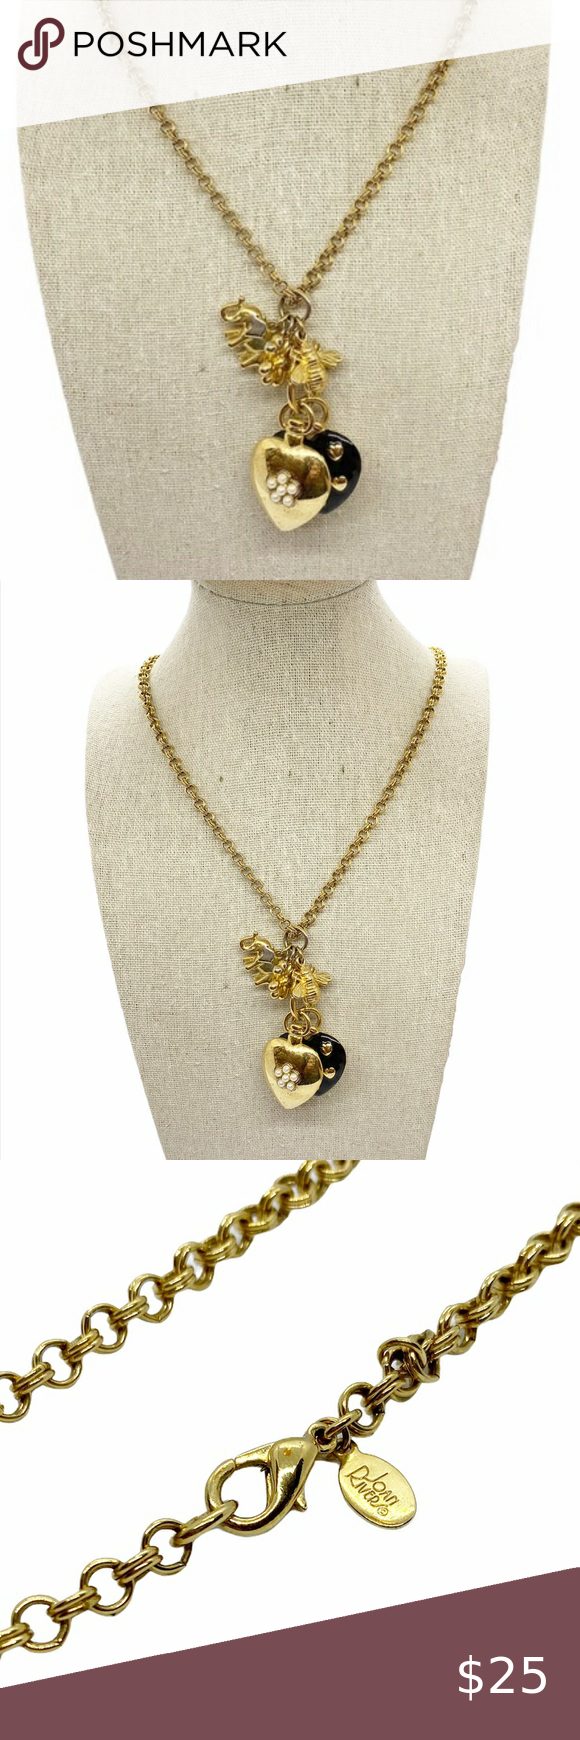 with chain pendant 36 long Crystal  bead necklace gold tone chain